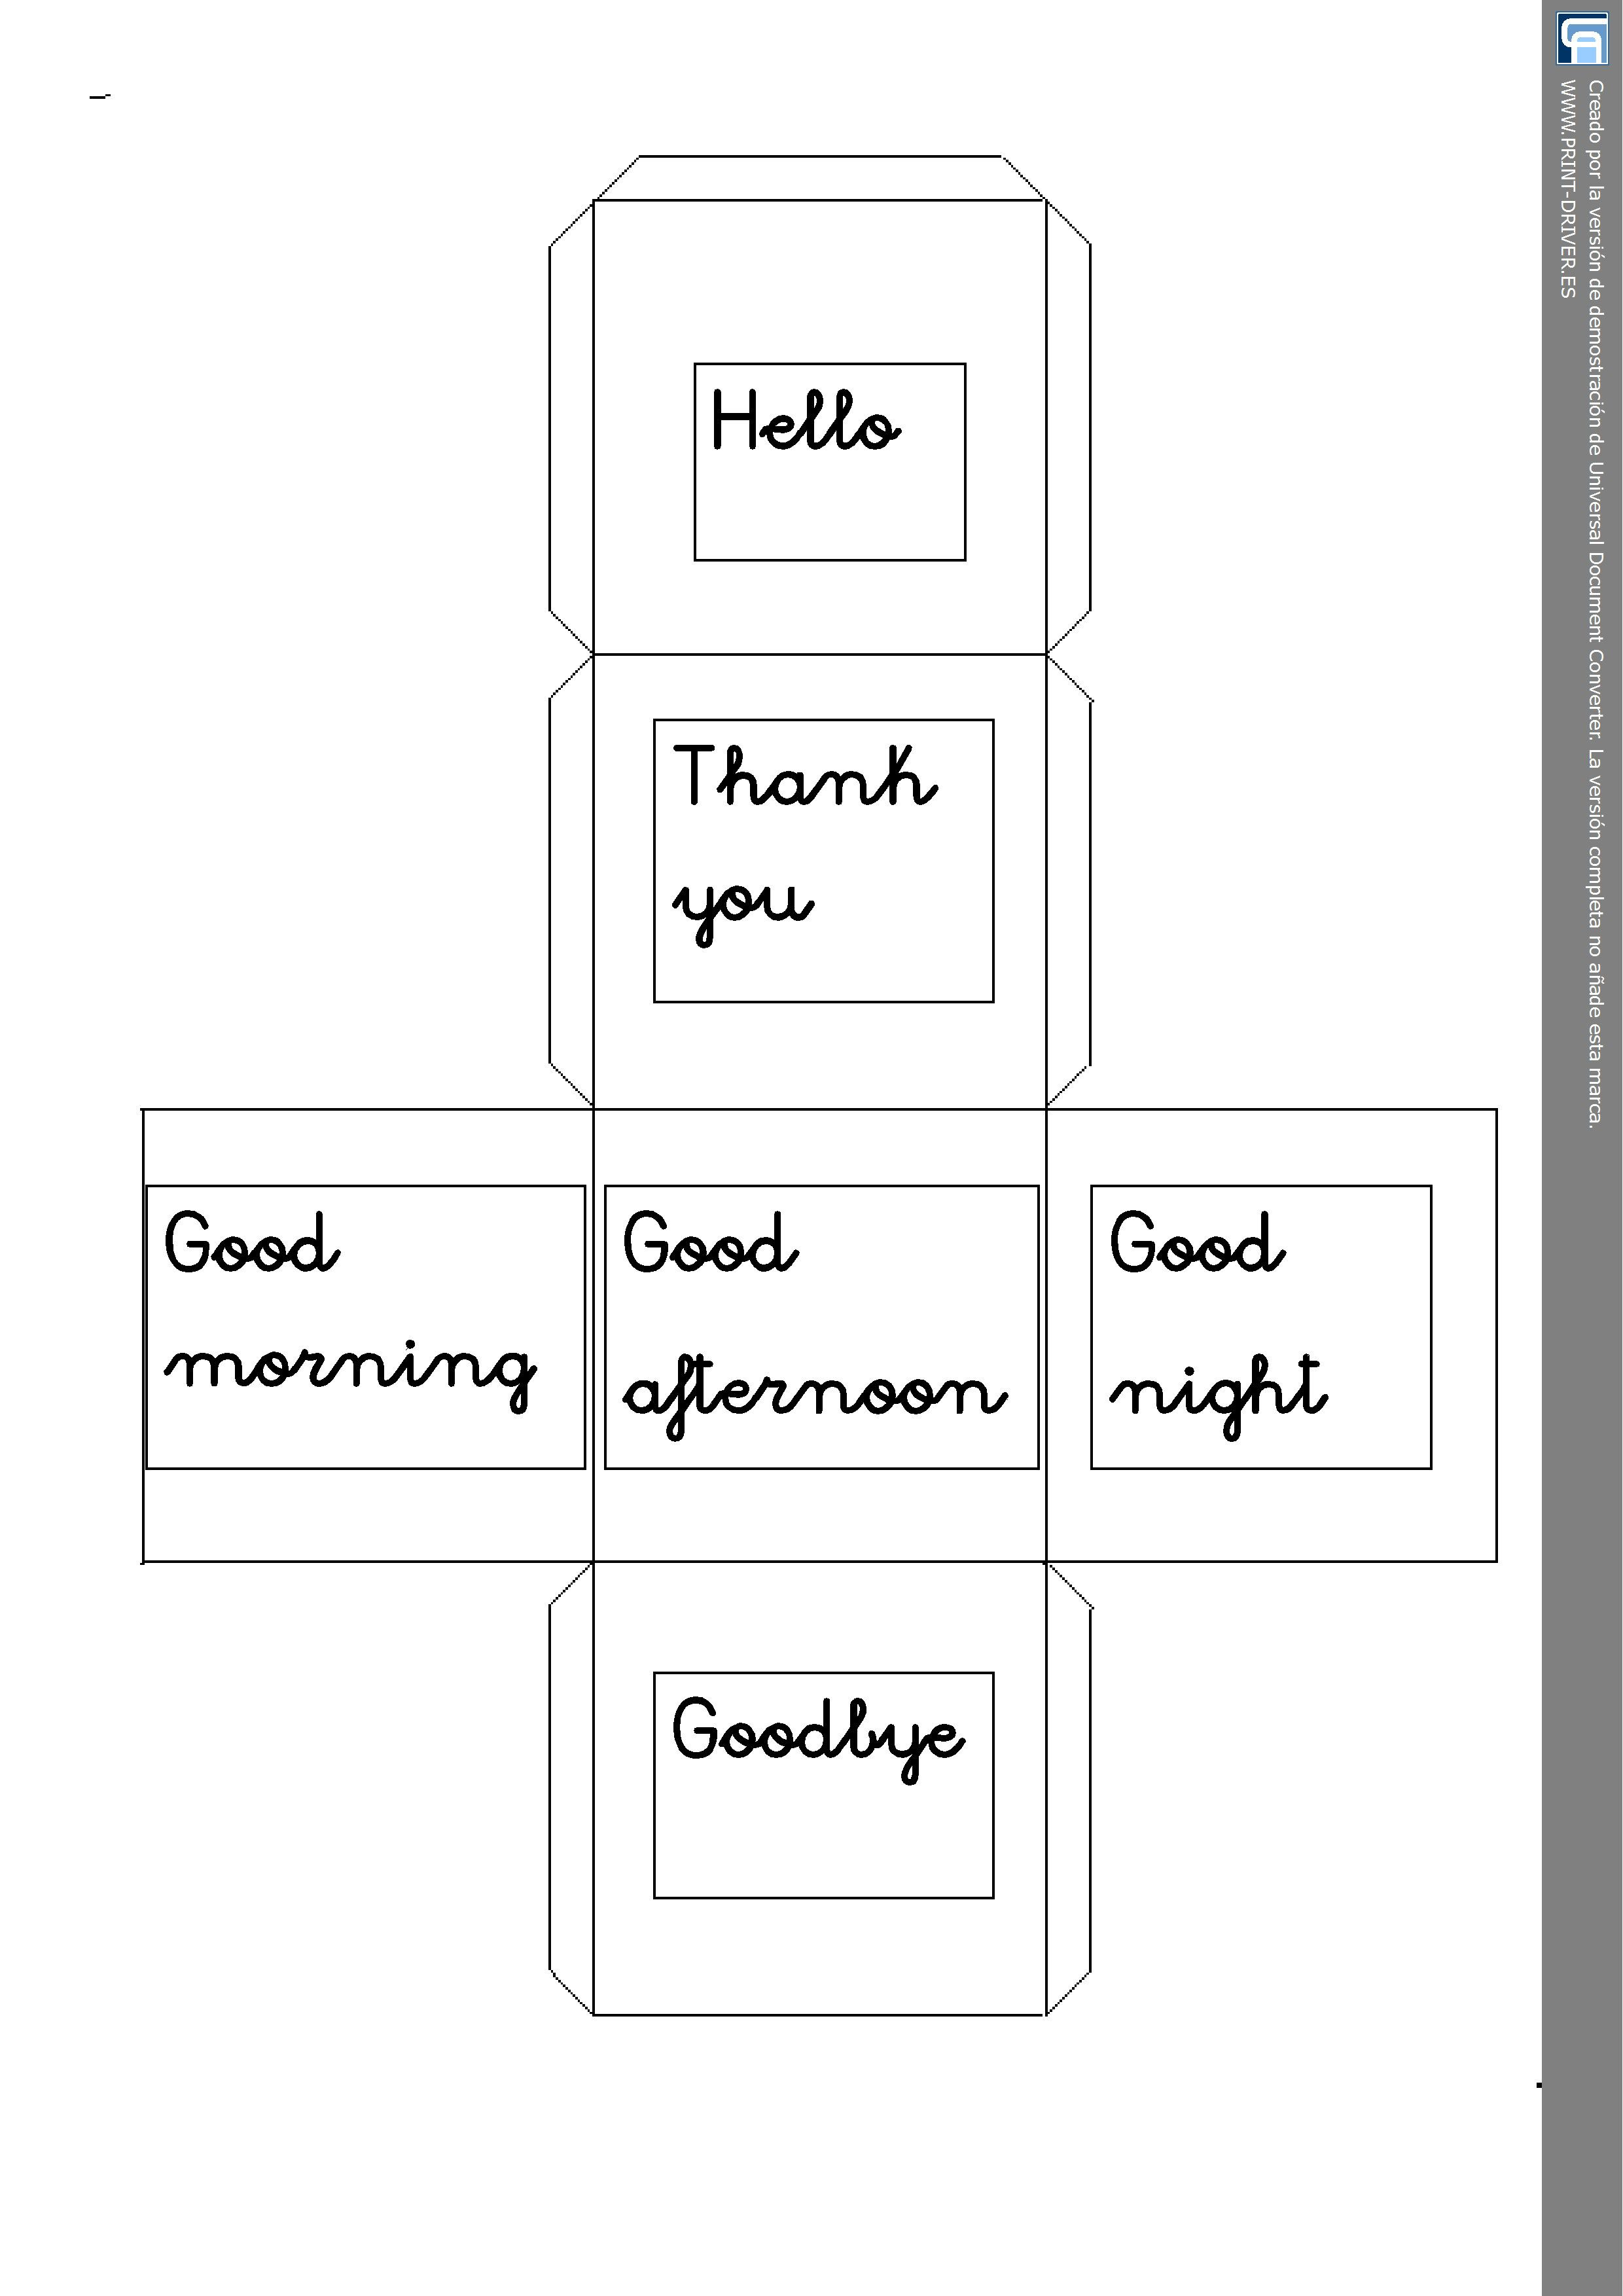 Cube Greetings Worksheet Year One Personal Teaching Resources Esl Instructions Students Can